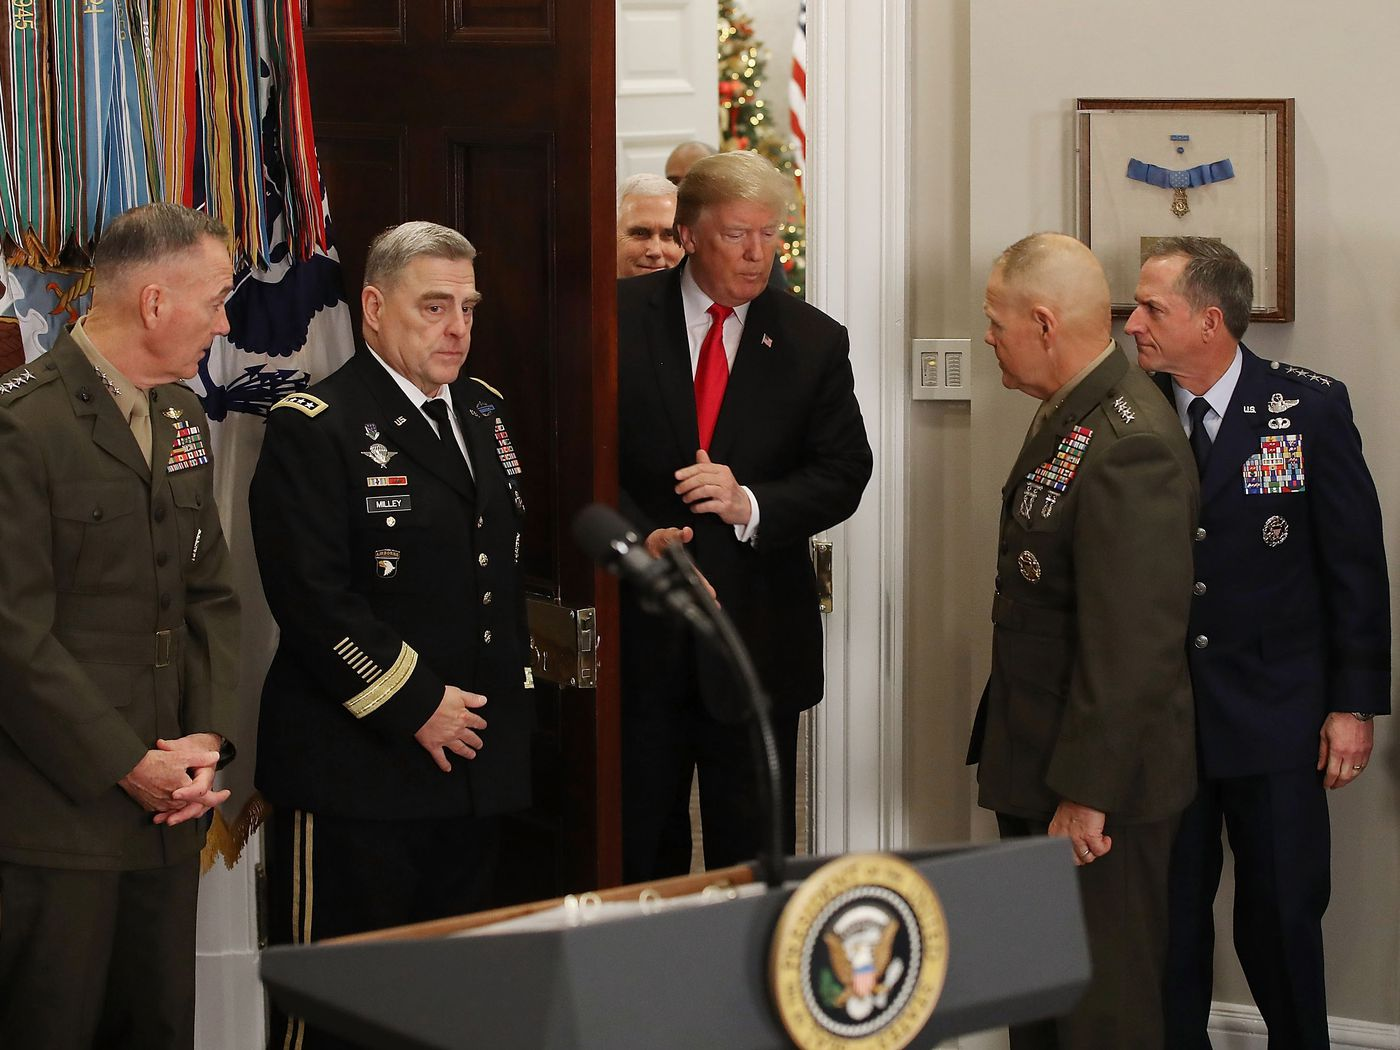 Trump State of the Union Address 2018: Trump the military